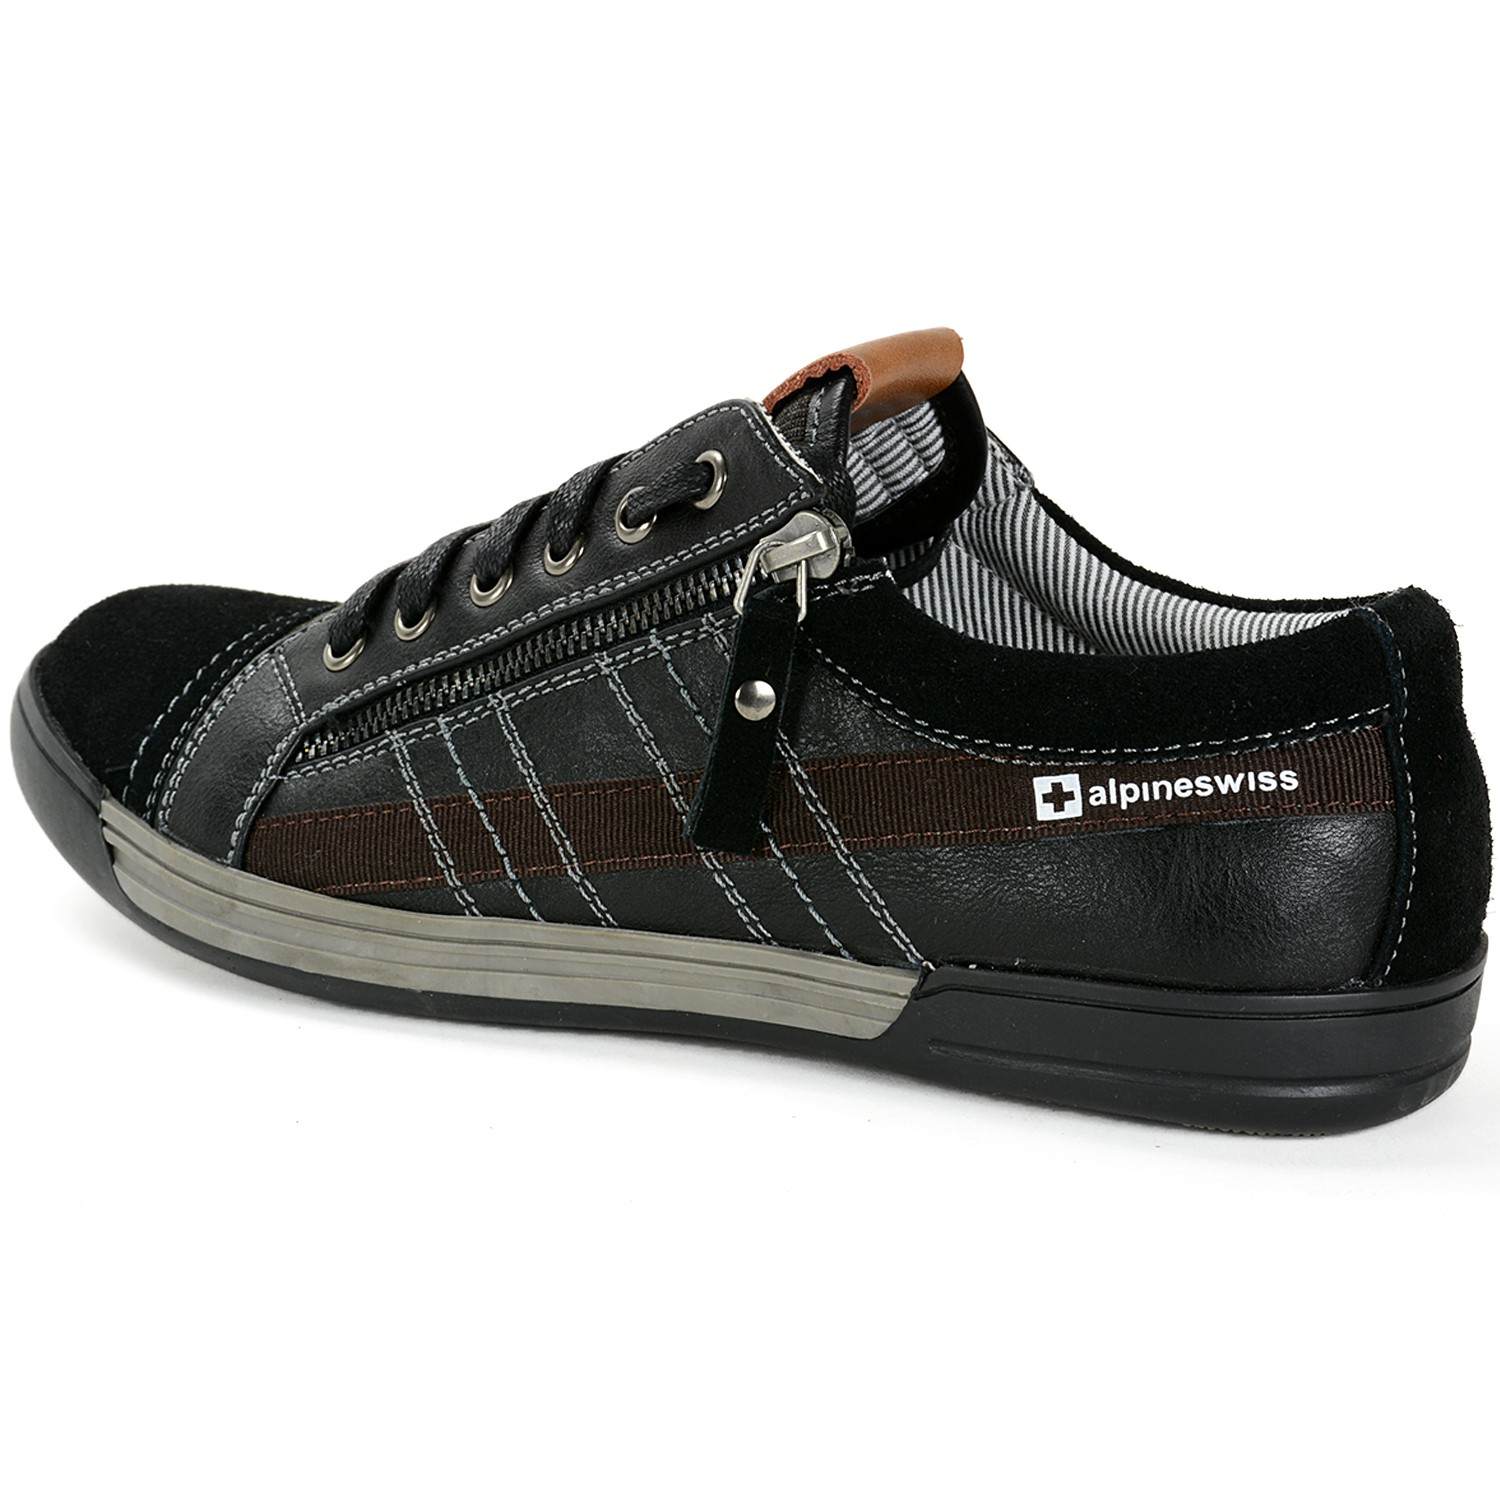 Mens Casual Shoes In Half Sizes